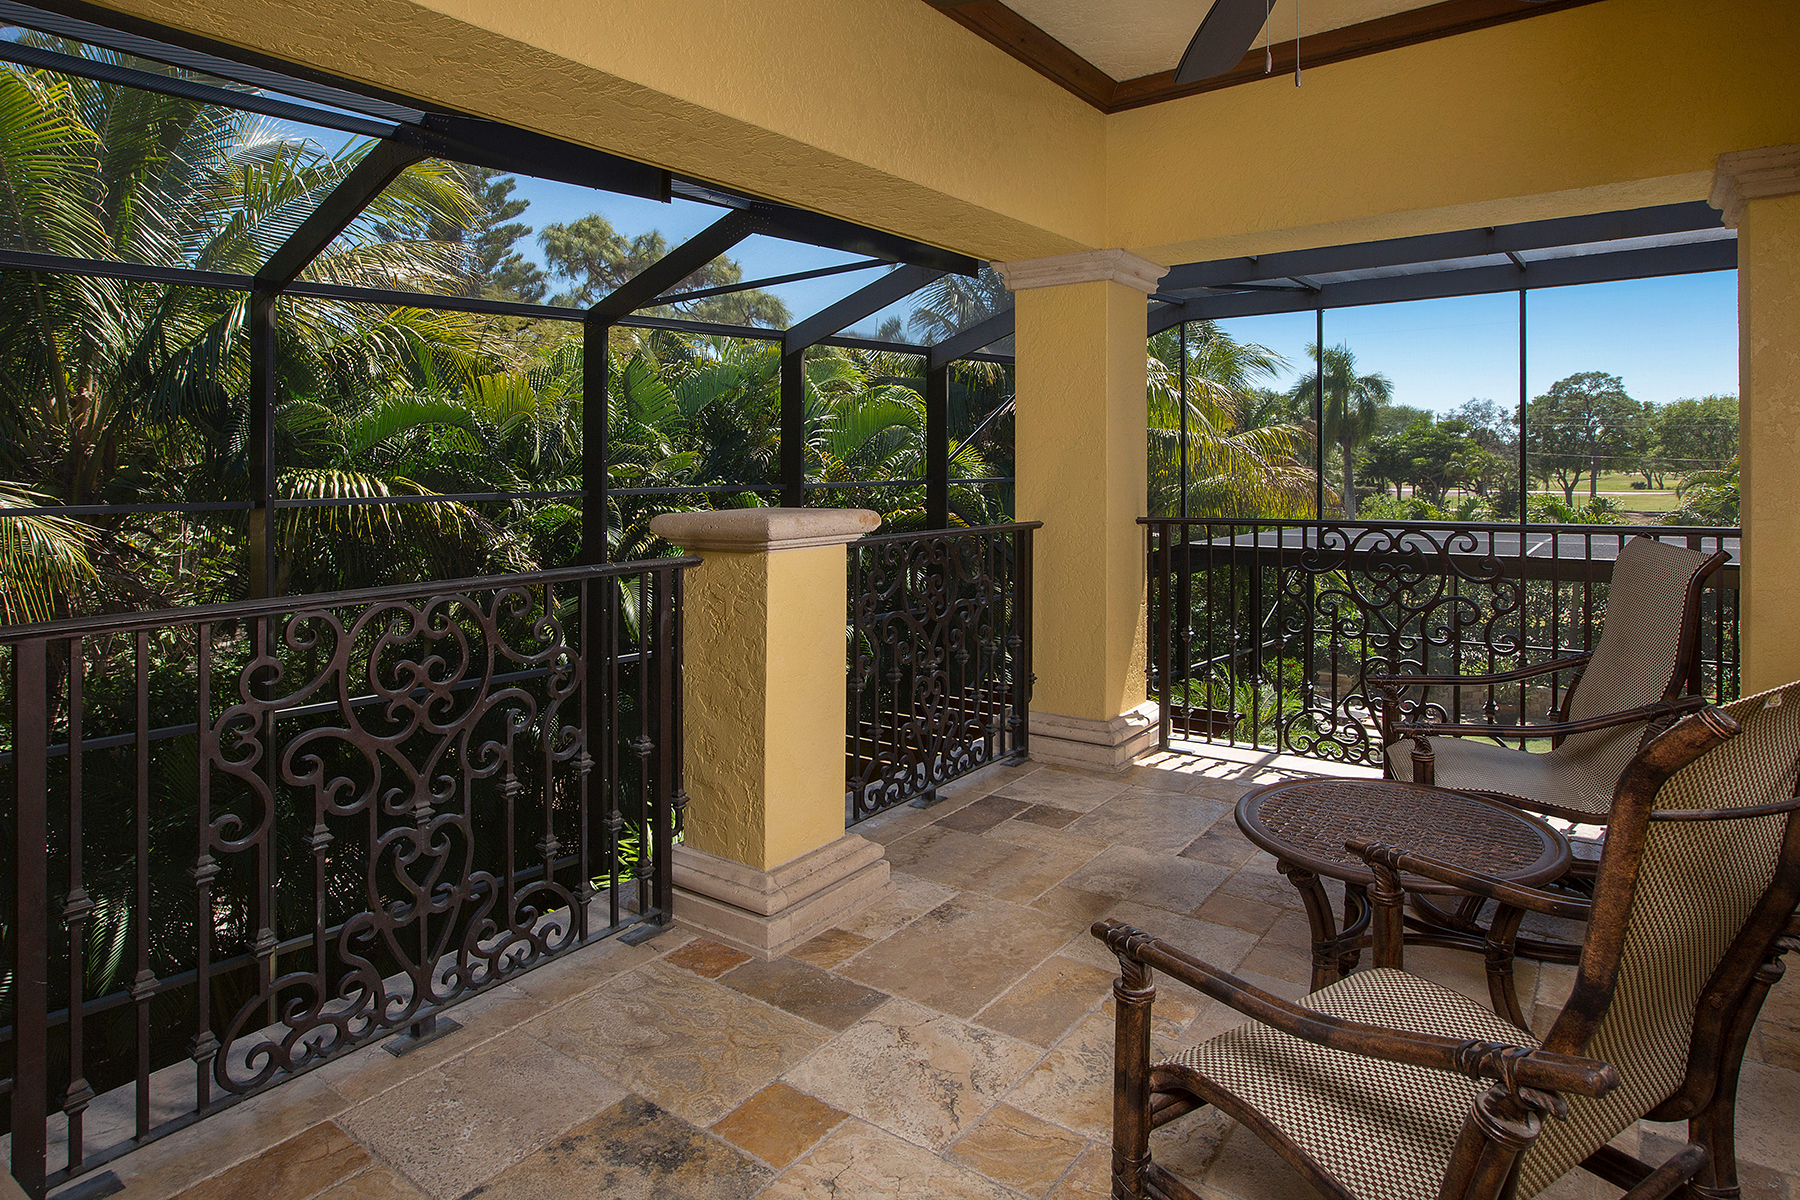 Additional photo for property listing at COQUINA SANDS 1300  Murex Dr,  Naples, Florida 34102 United States